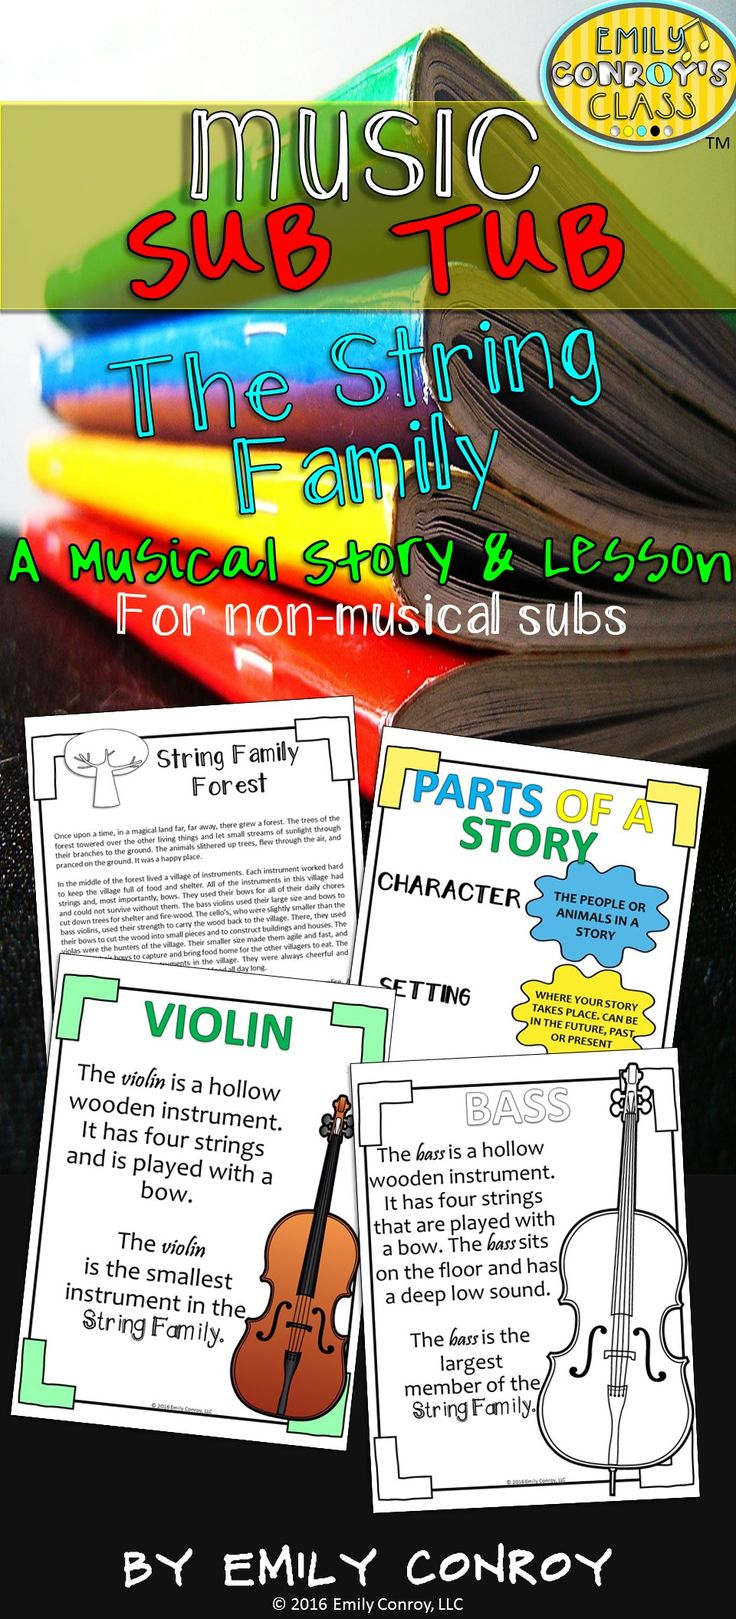 Music Sub Tub contains an original story and accompanying lesson about the string family of the orchestra. This 40 minute lesson can be used by music teachers or music substitutes and is a great way to integrate literacy into the music classroom!